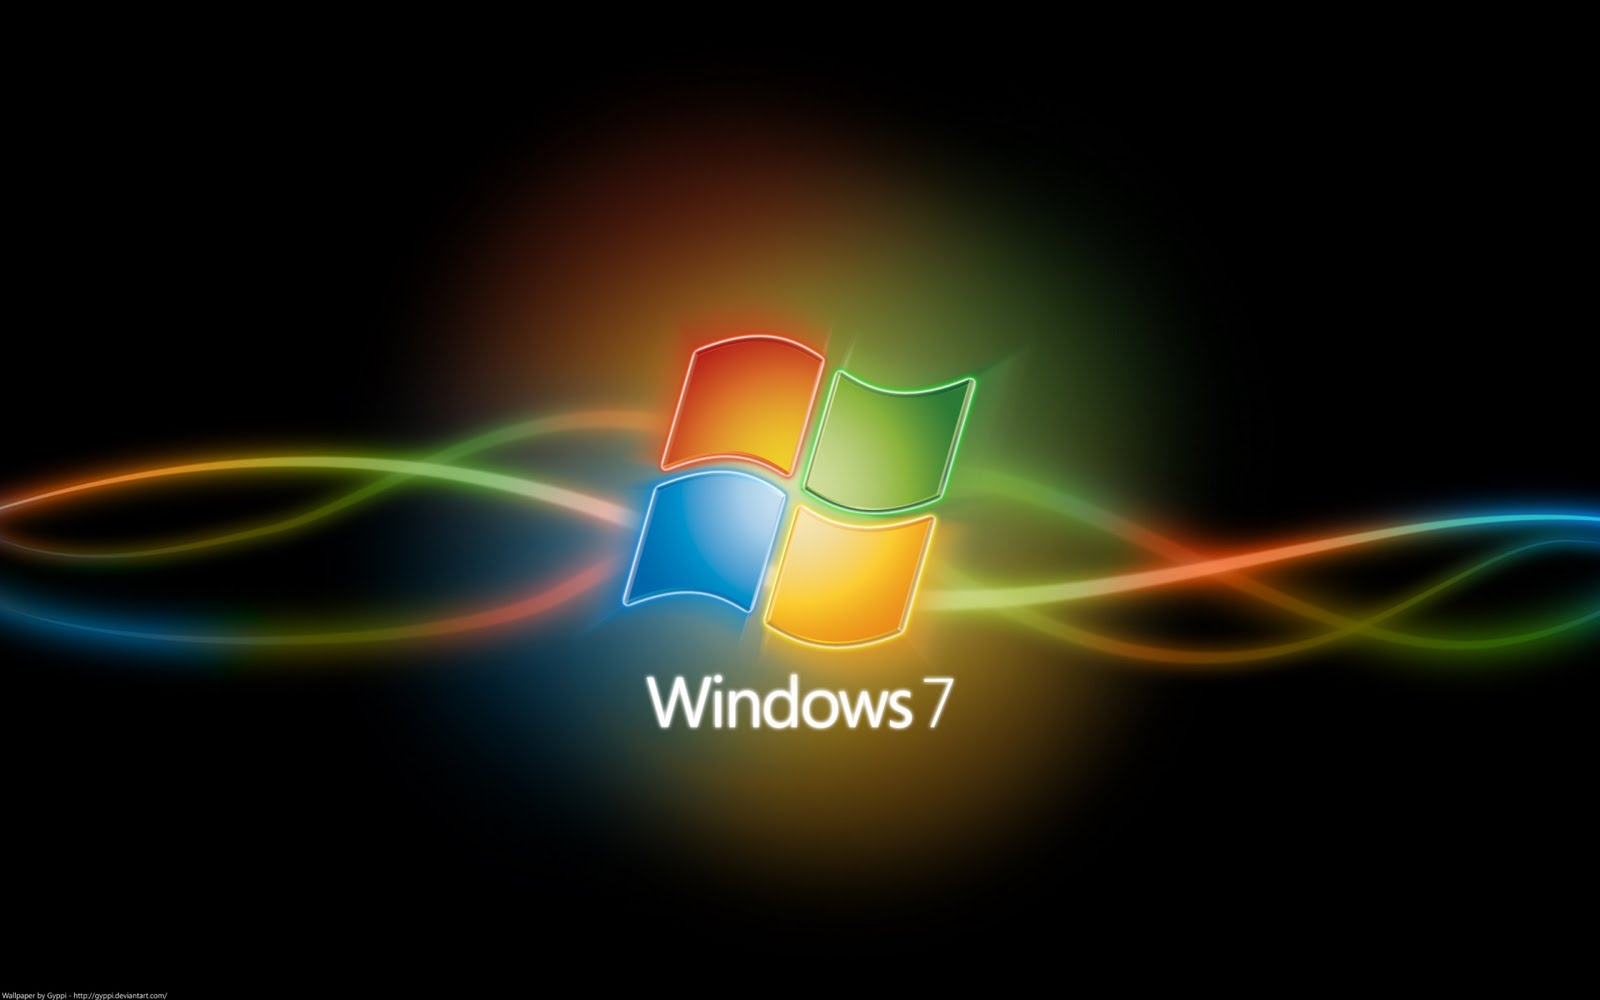 windows7 desktop wallpaper free download